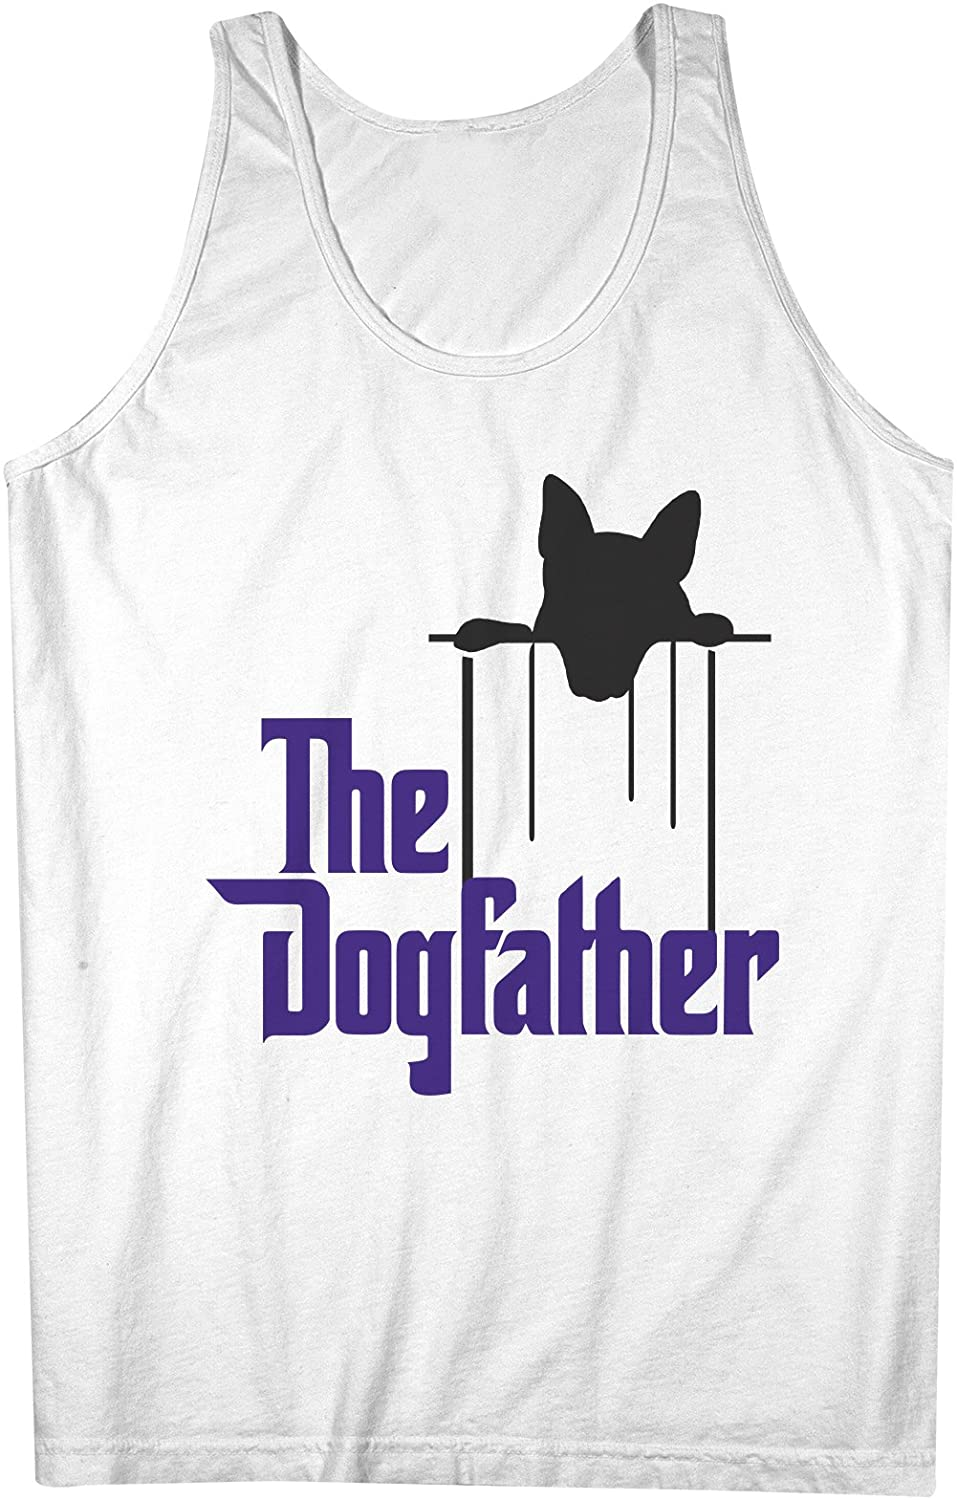 The 犬father おかしいです 犬 Pet Parody 男性用 Tank Top Sleeveless Shirt